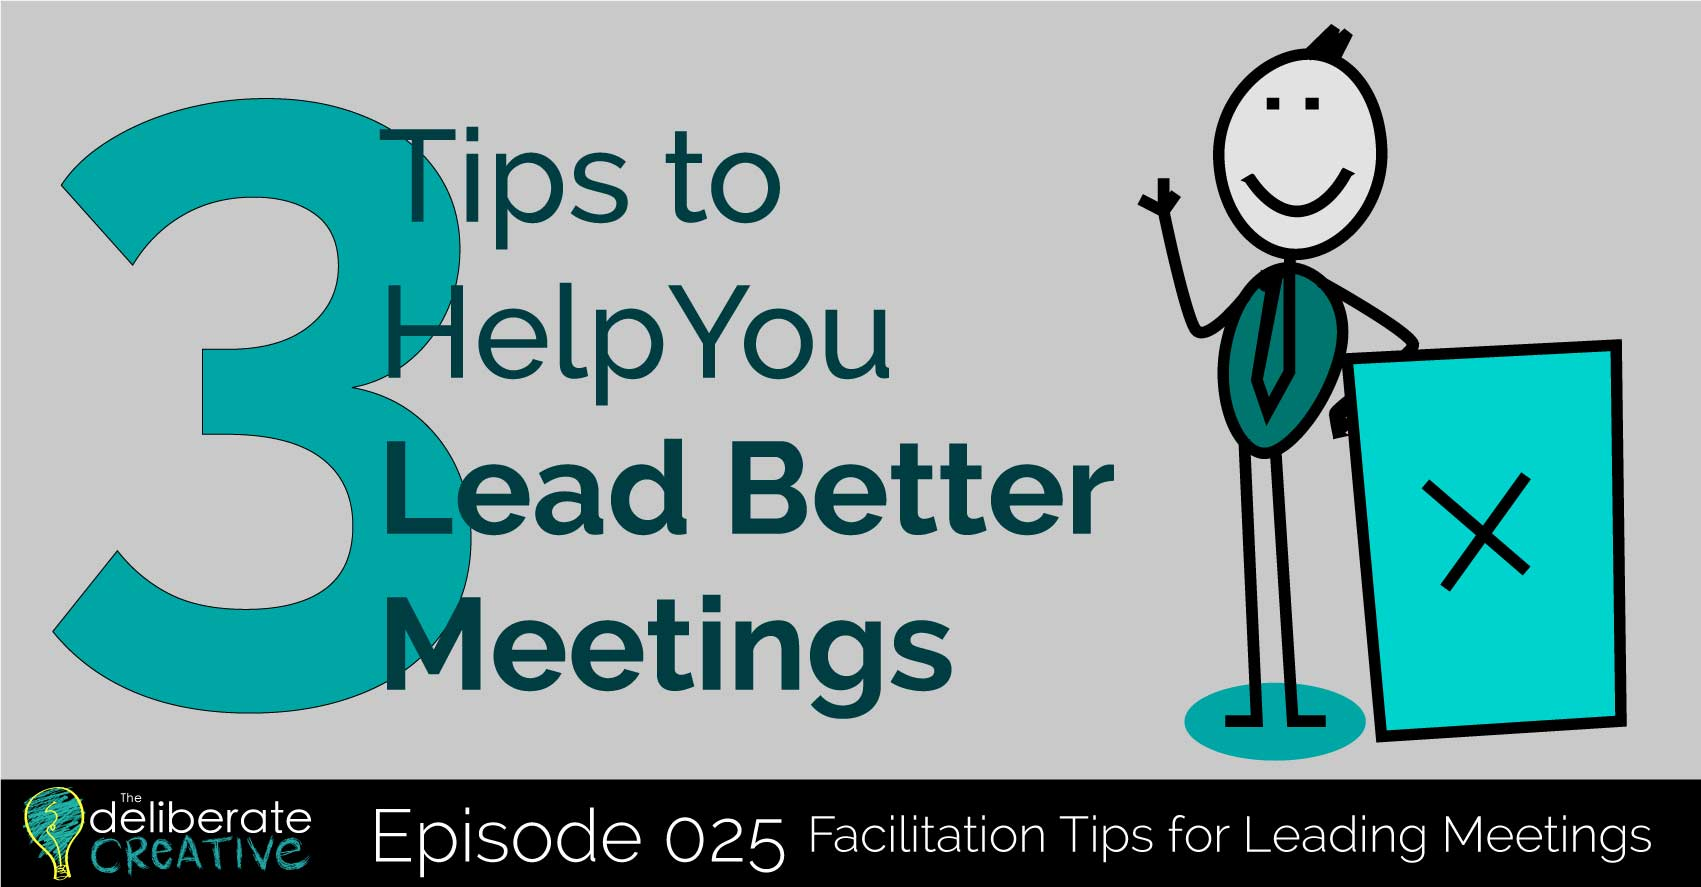 3 Tips to Help You Lead Better Meetings